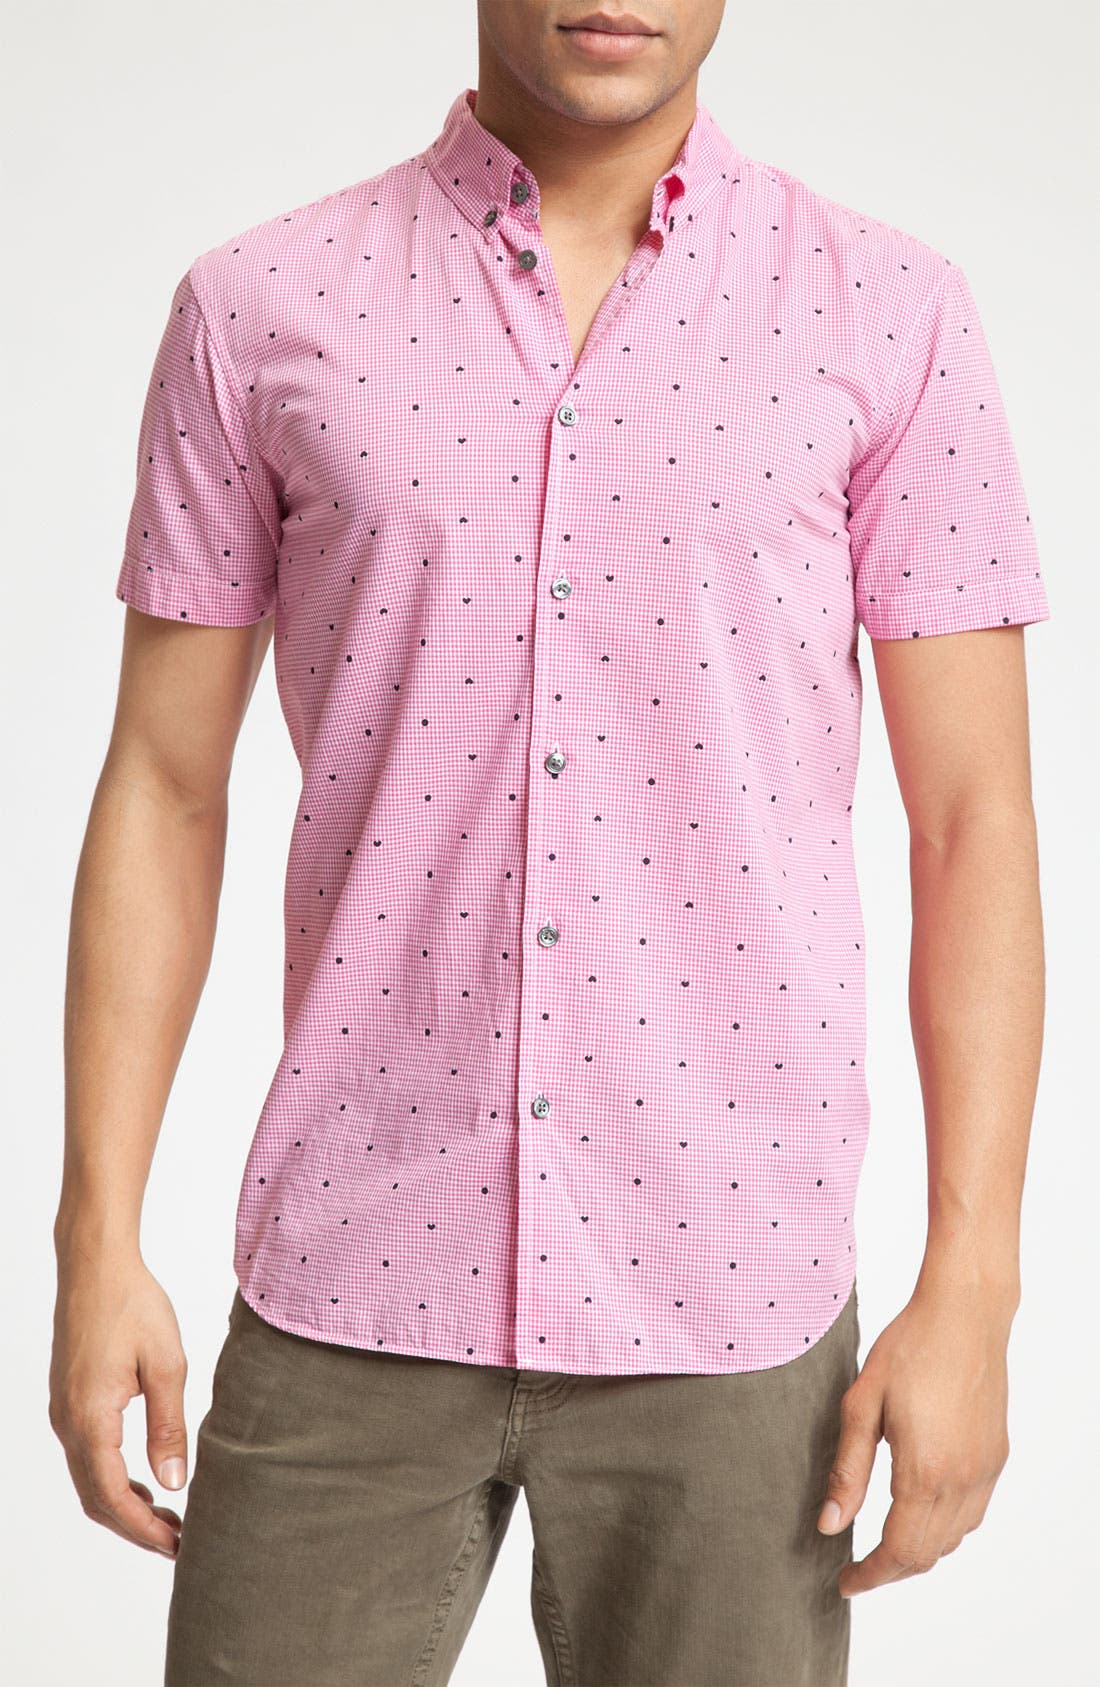 Main Image - MARC BY MARC JACOBS 'Hearts & Dots' Shirt